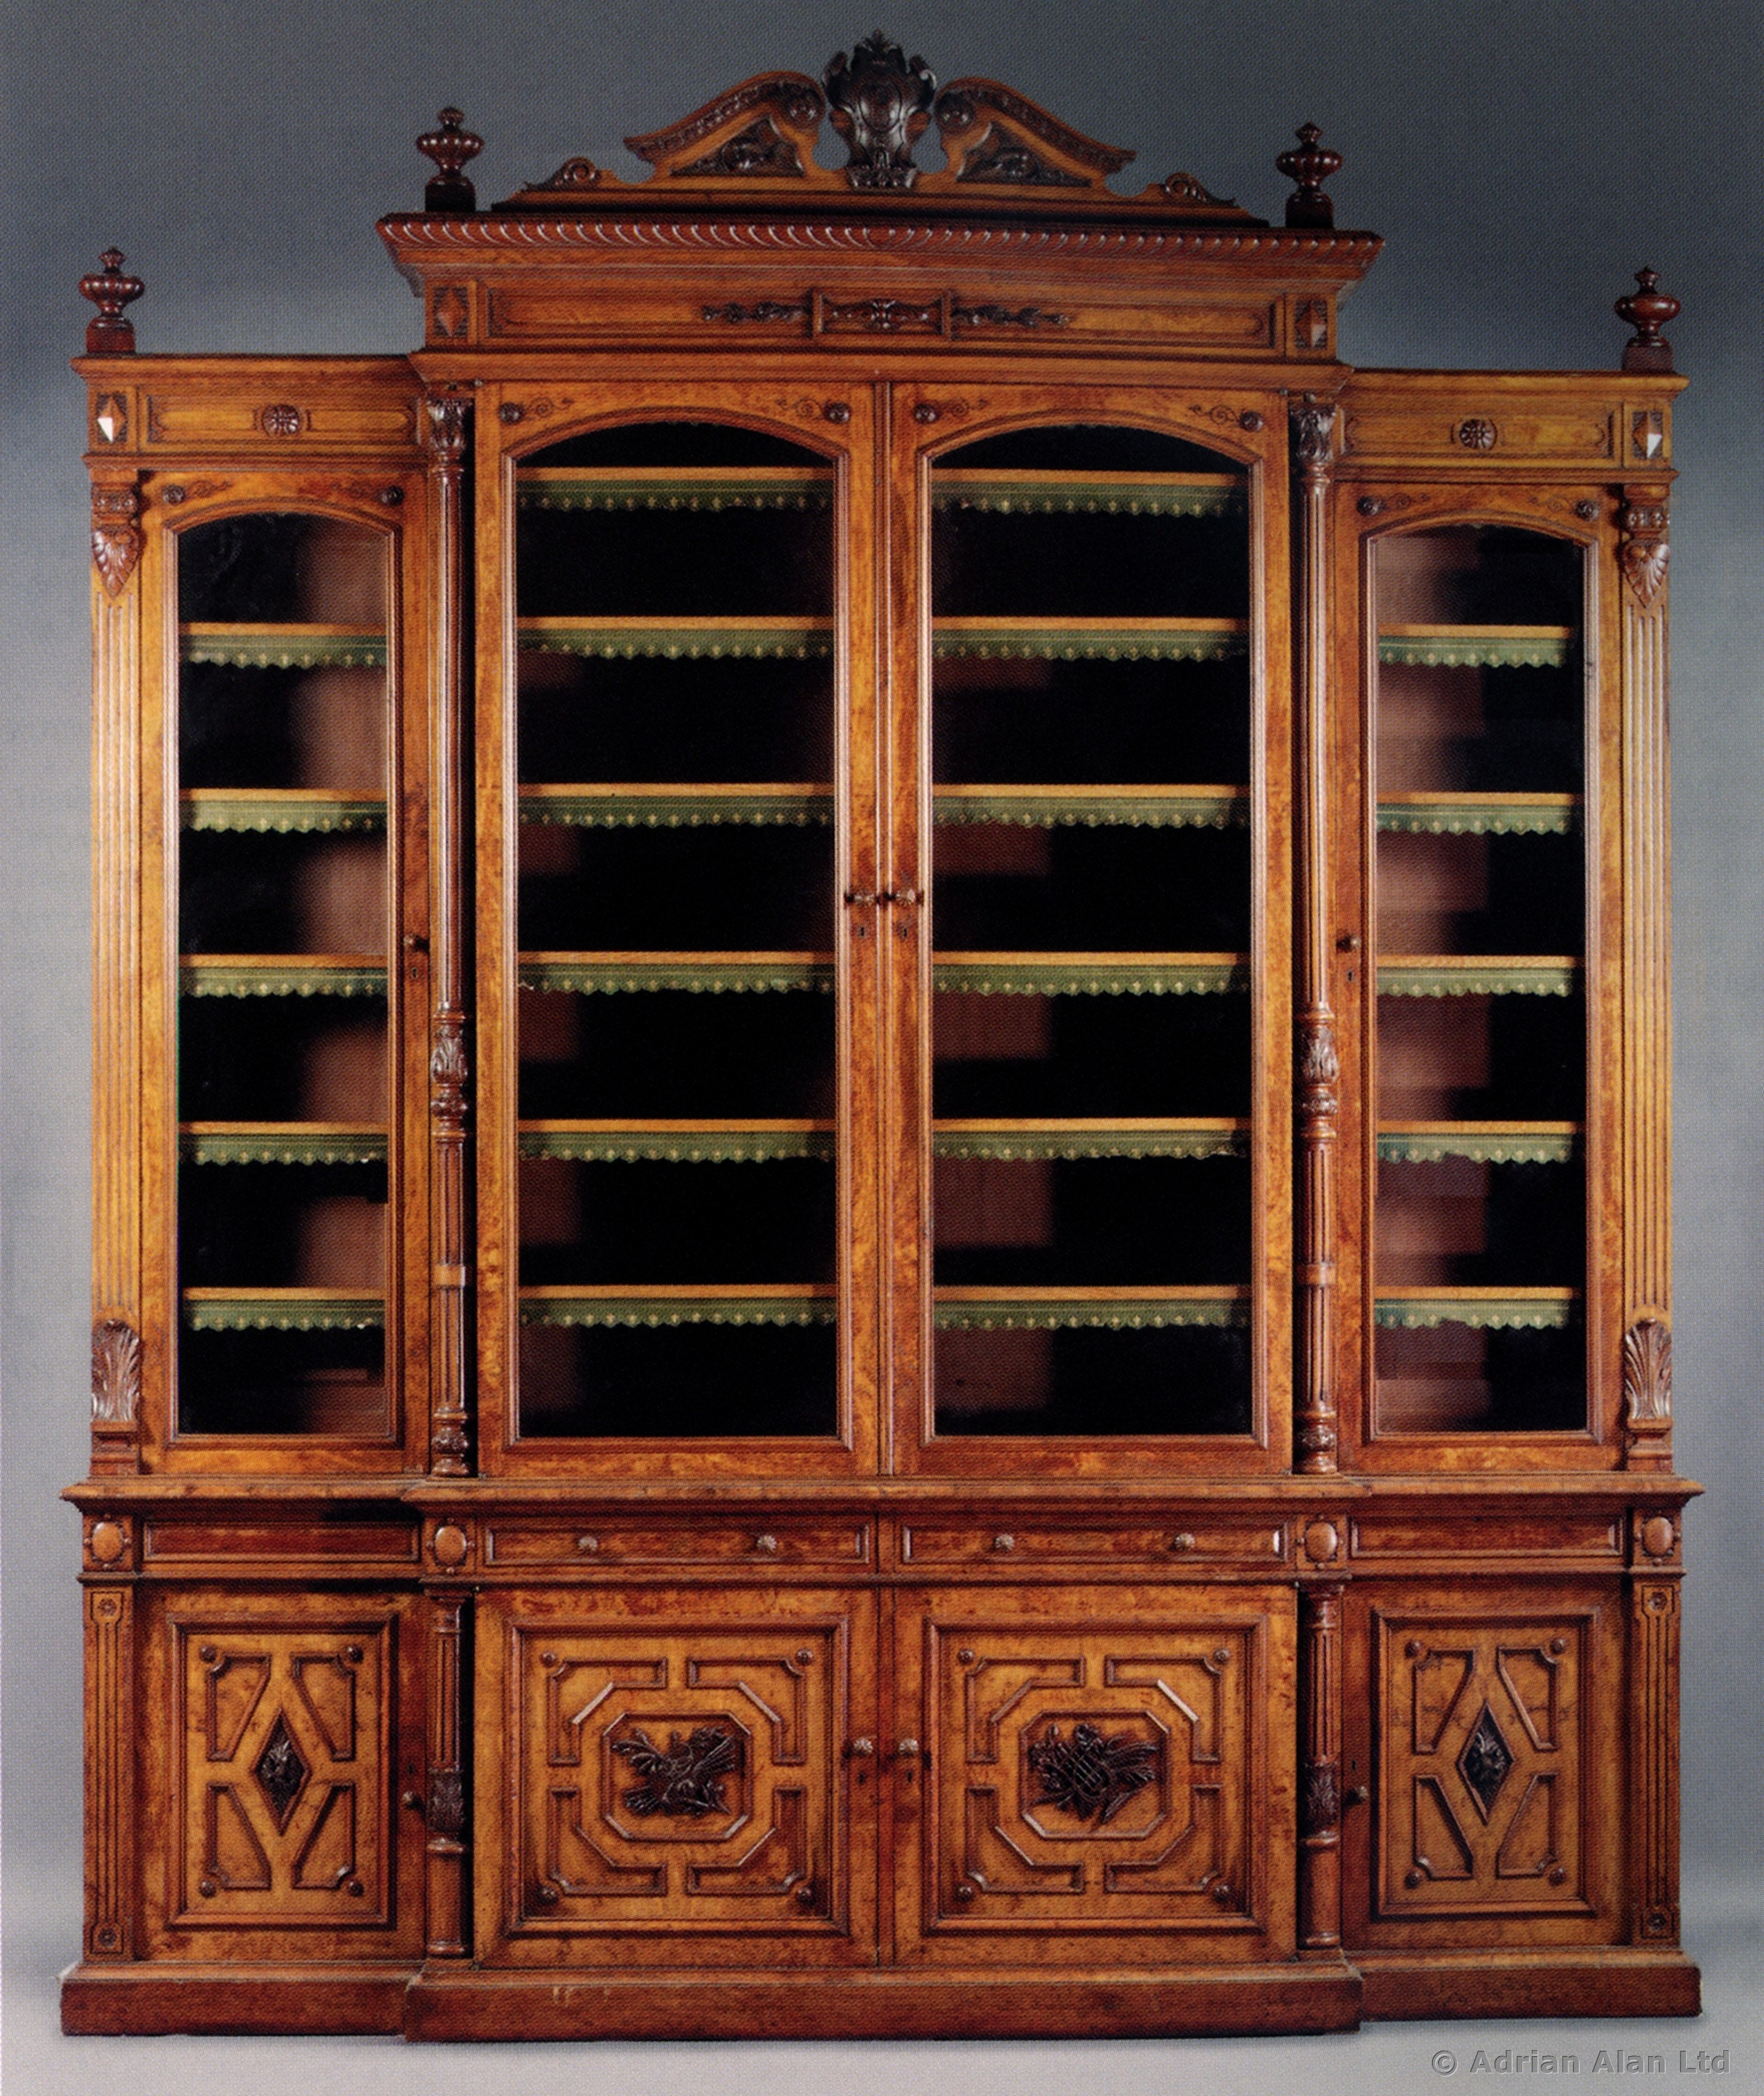 A Large Carved Oak And Pollard Oak Breakfront Library Bookcase With Regard To Oak Library Bookcase (View 7 of 15)